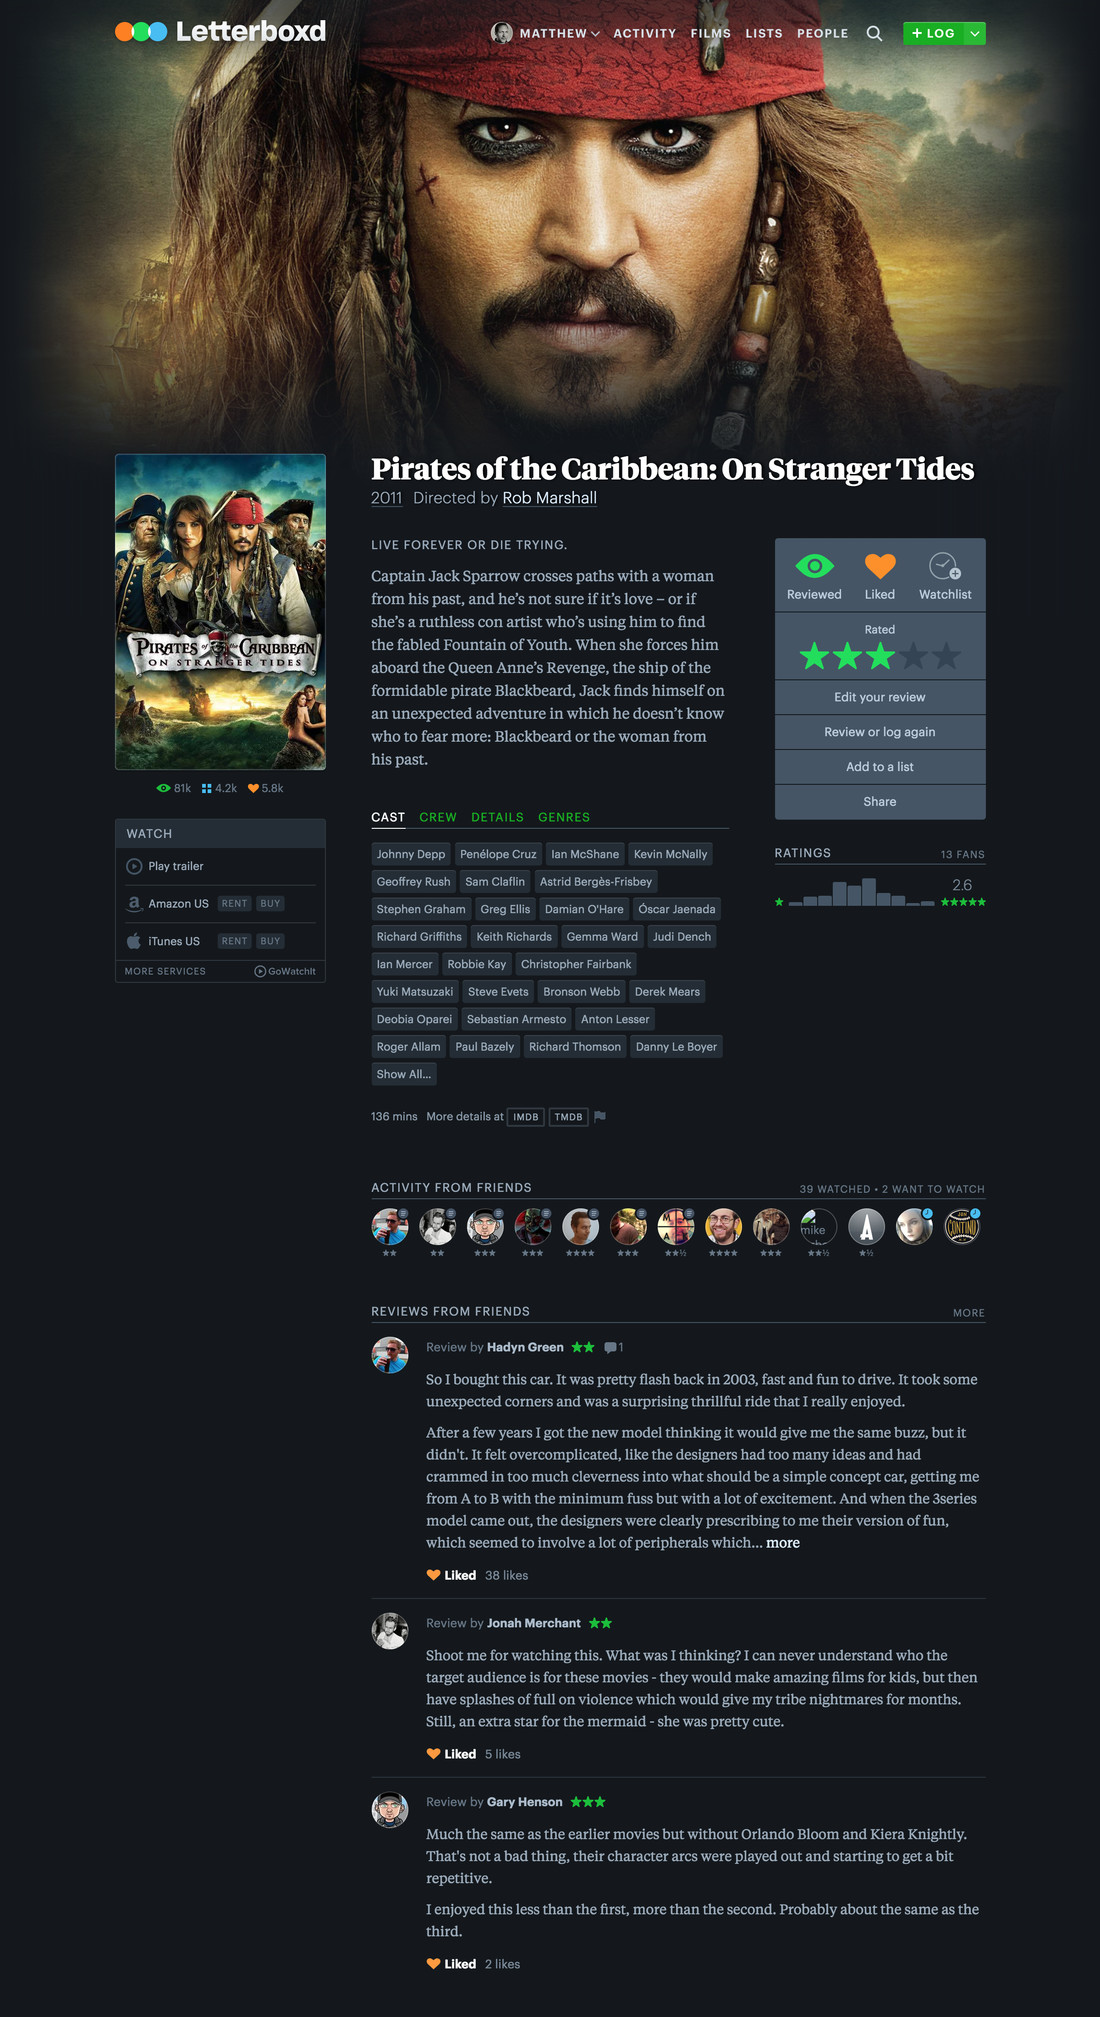 Detail image for Letterboxd